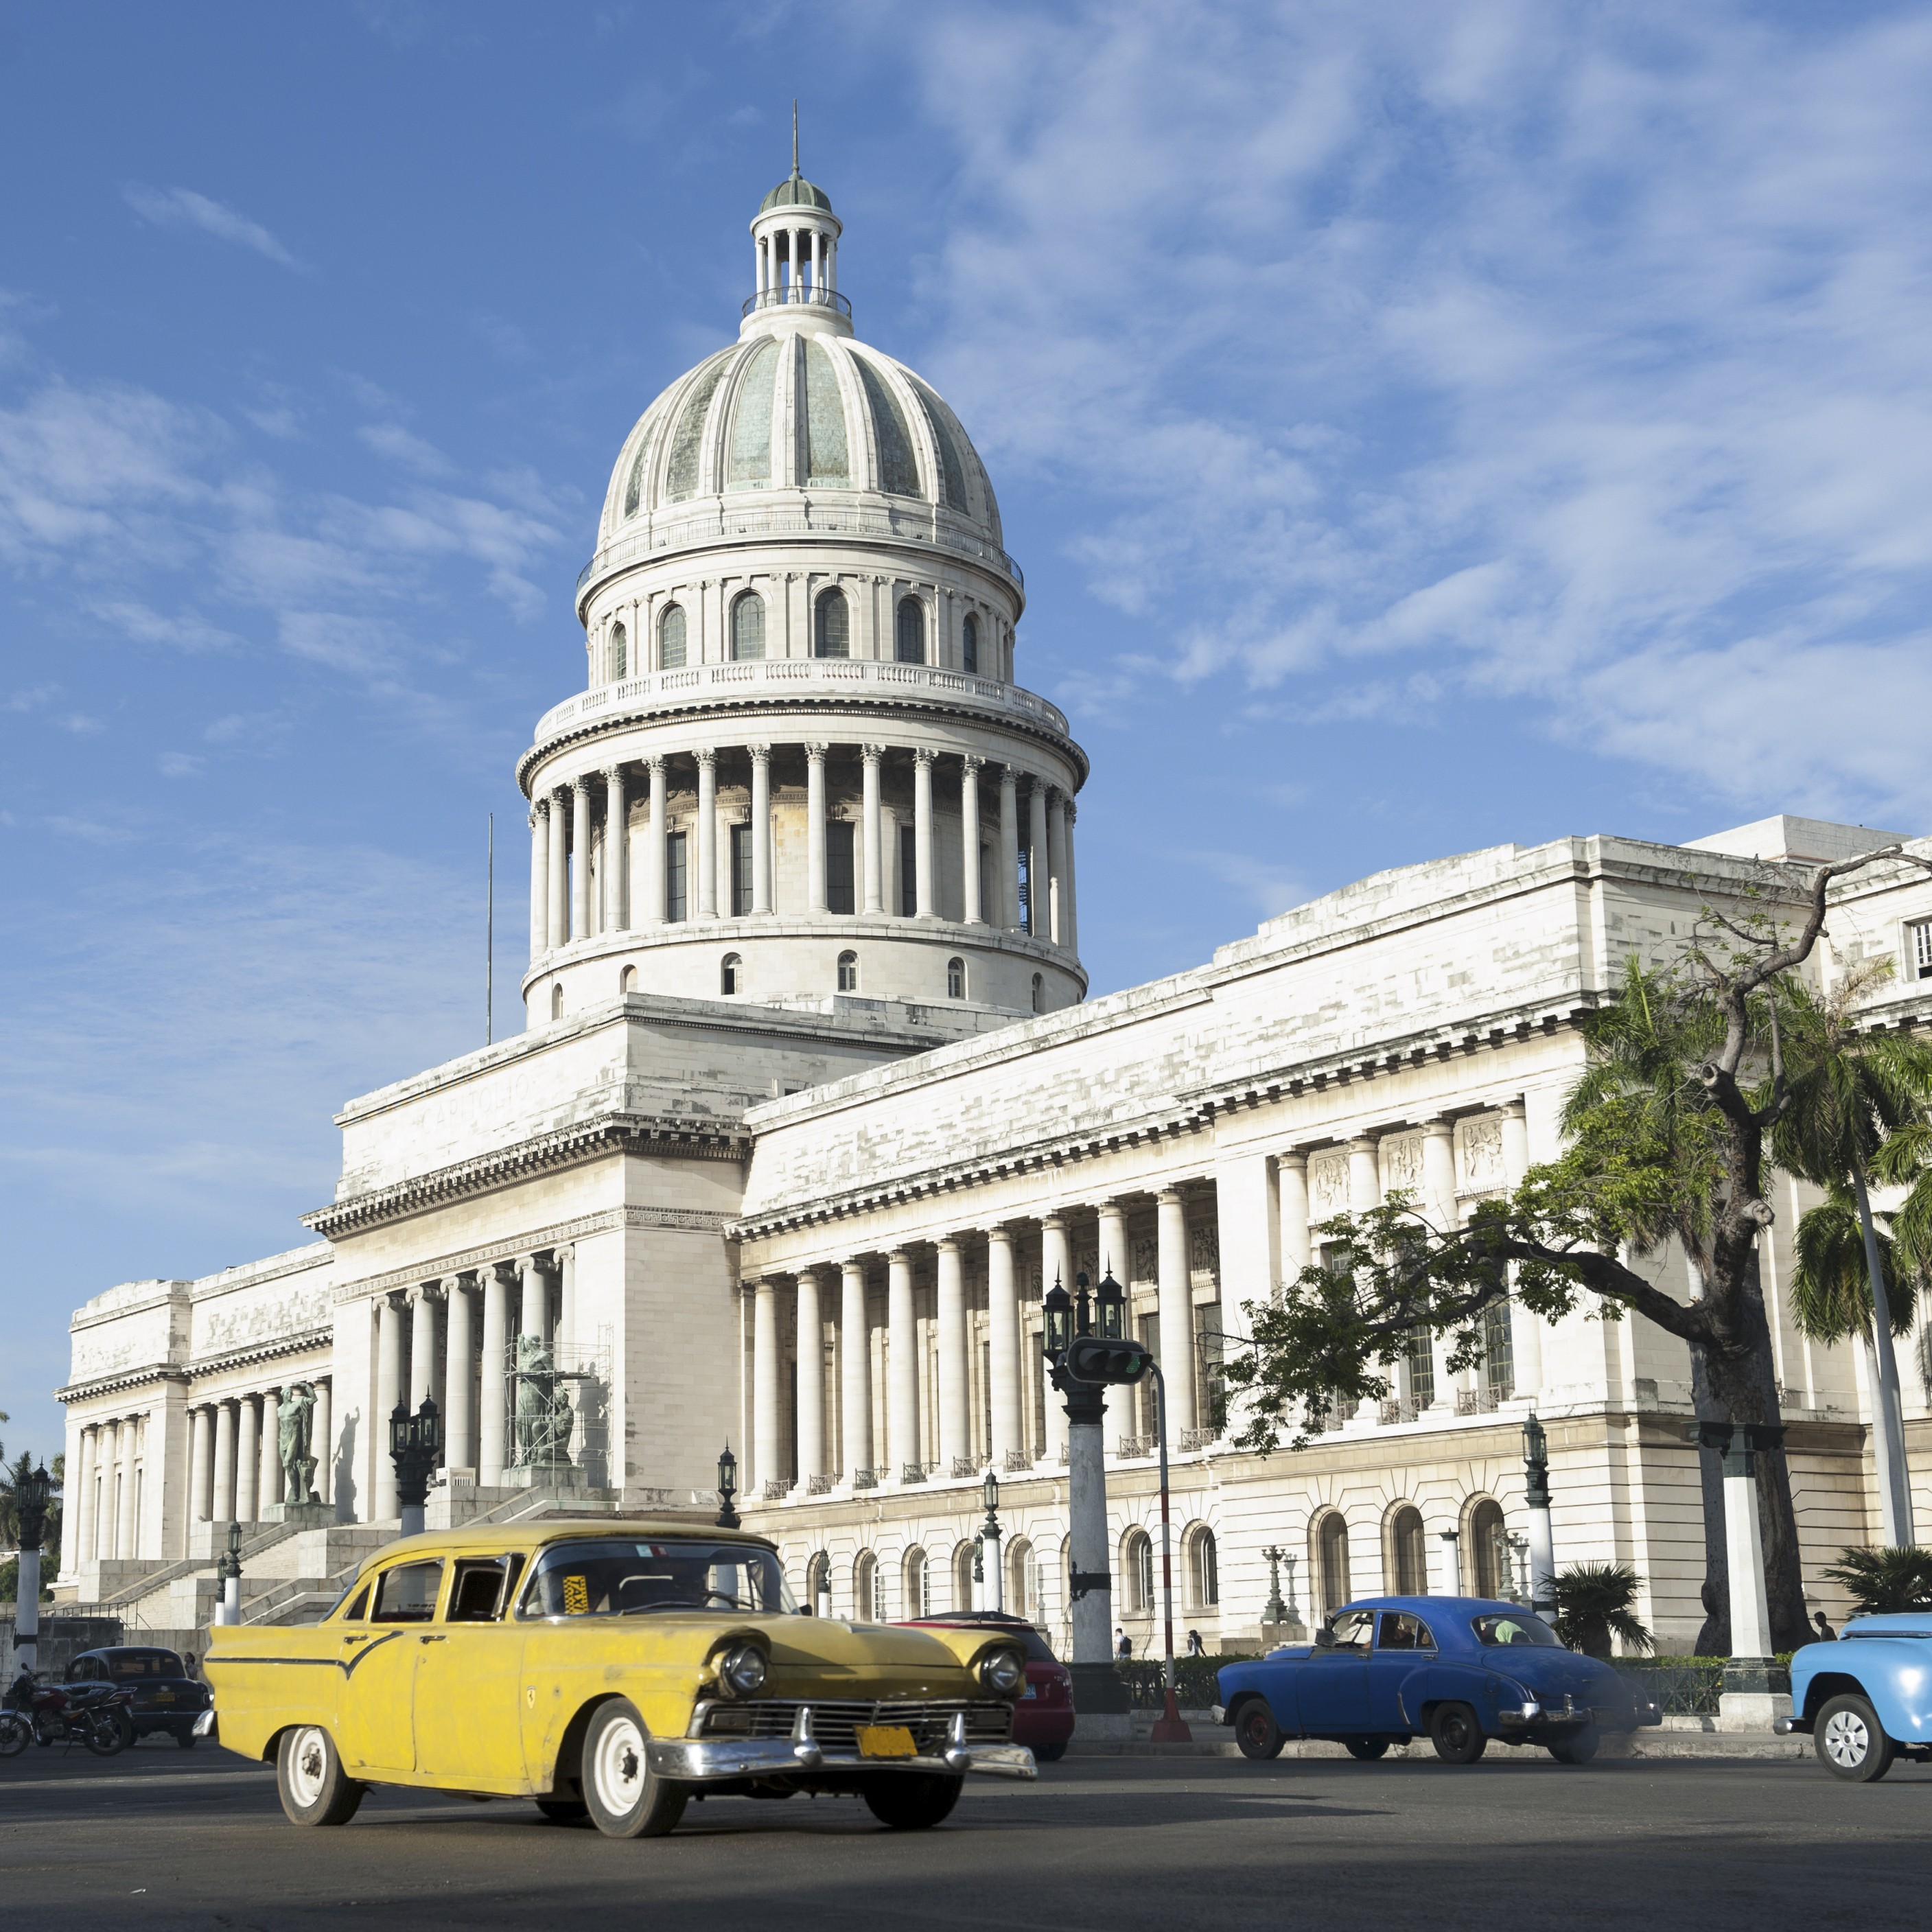 La Habana (walking tour)